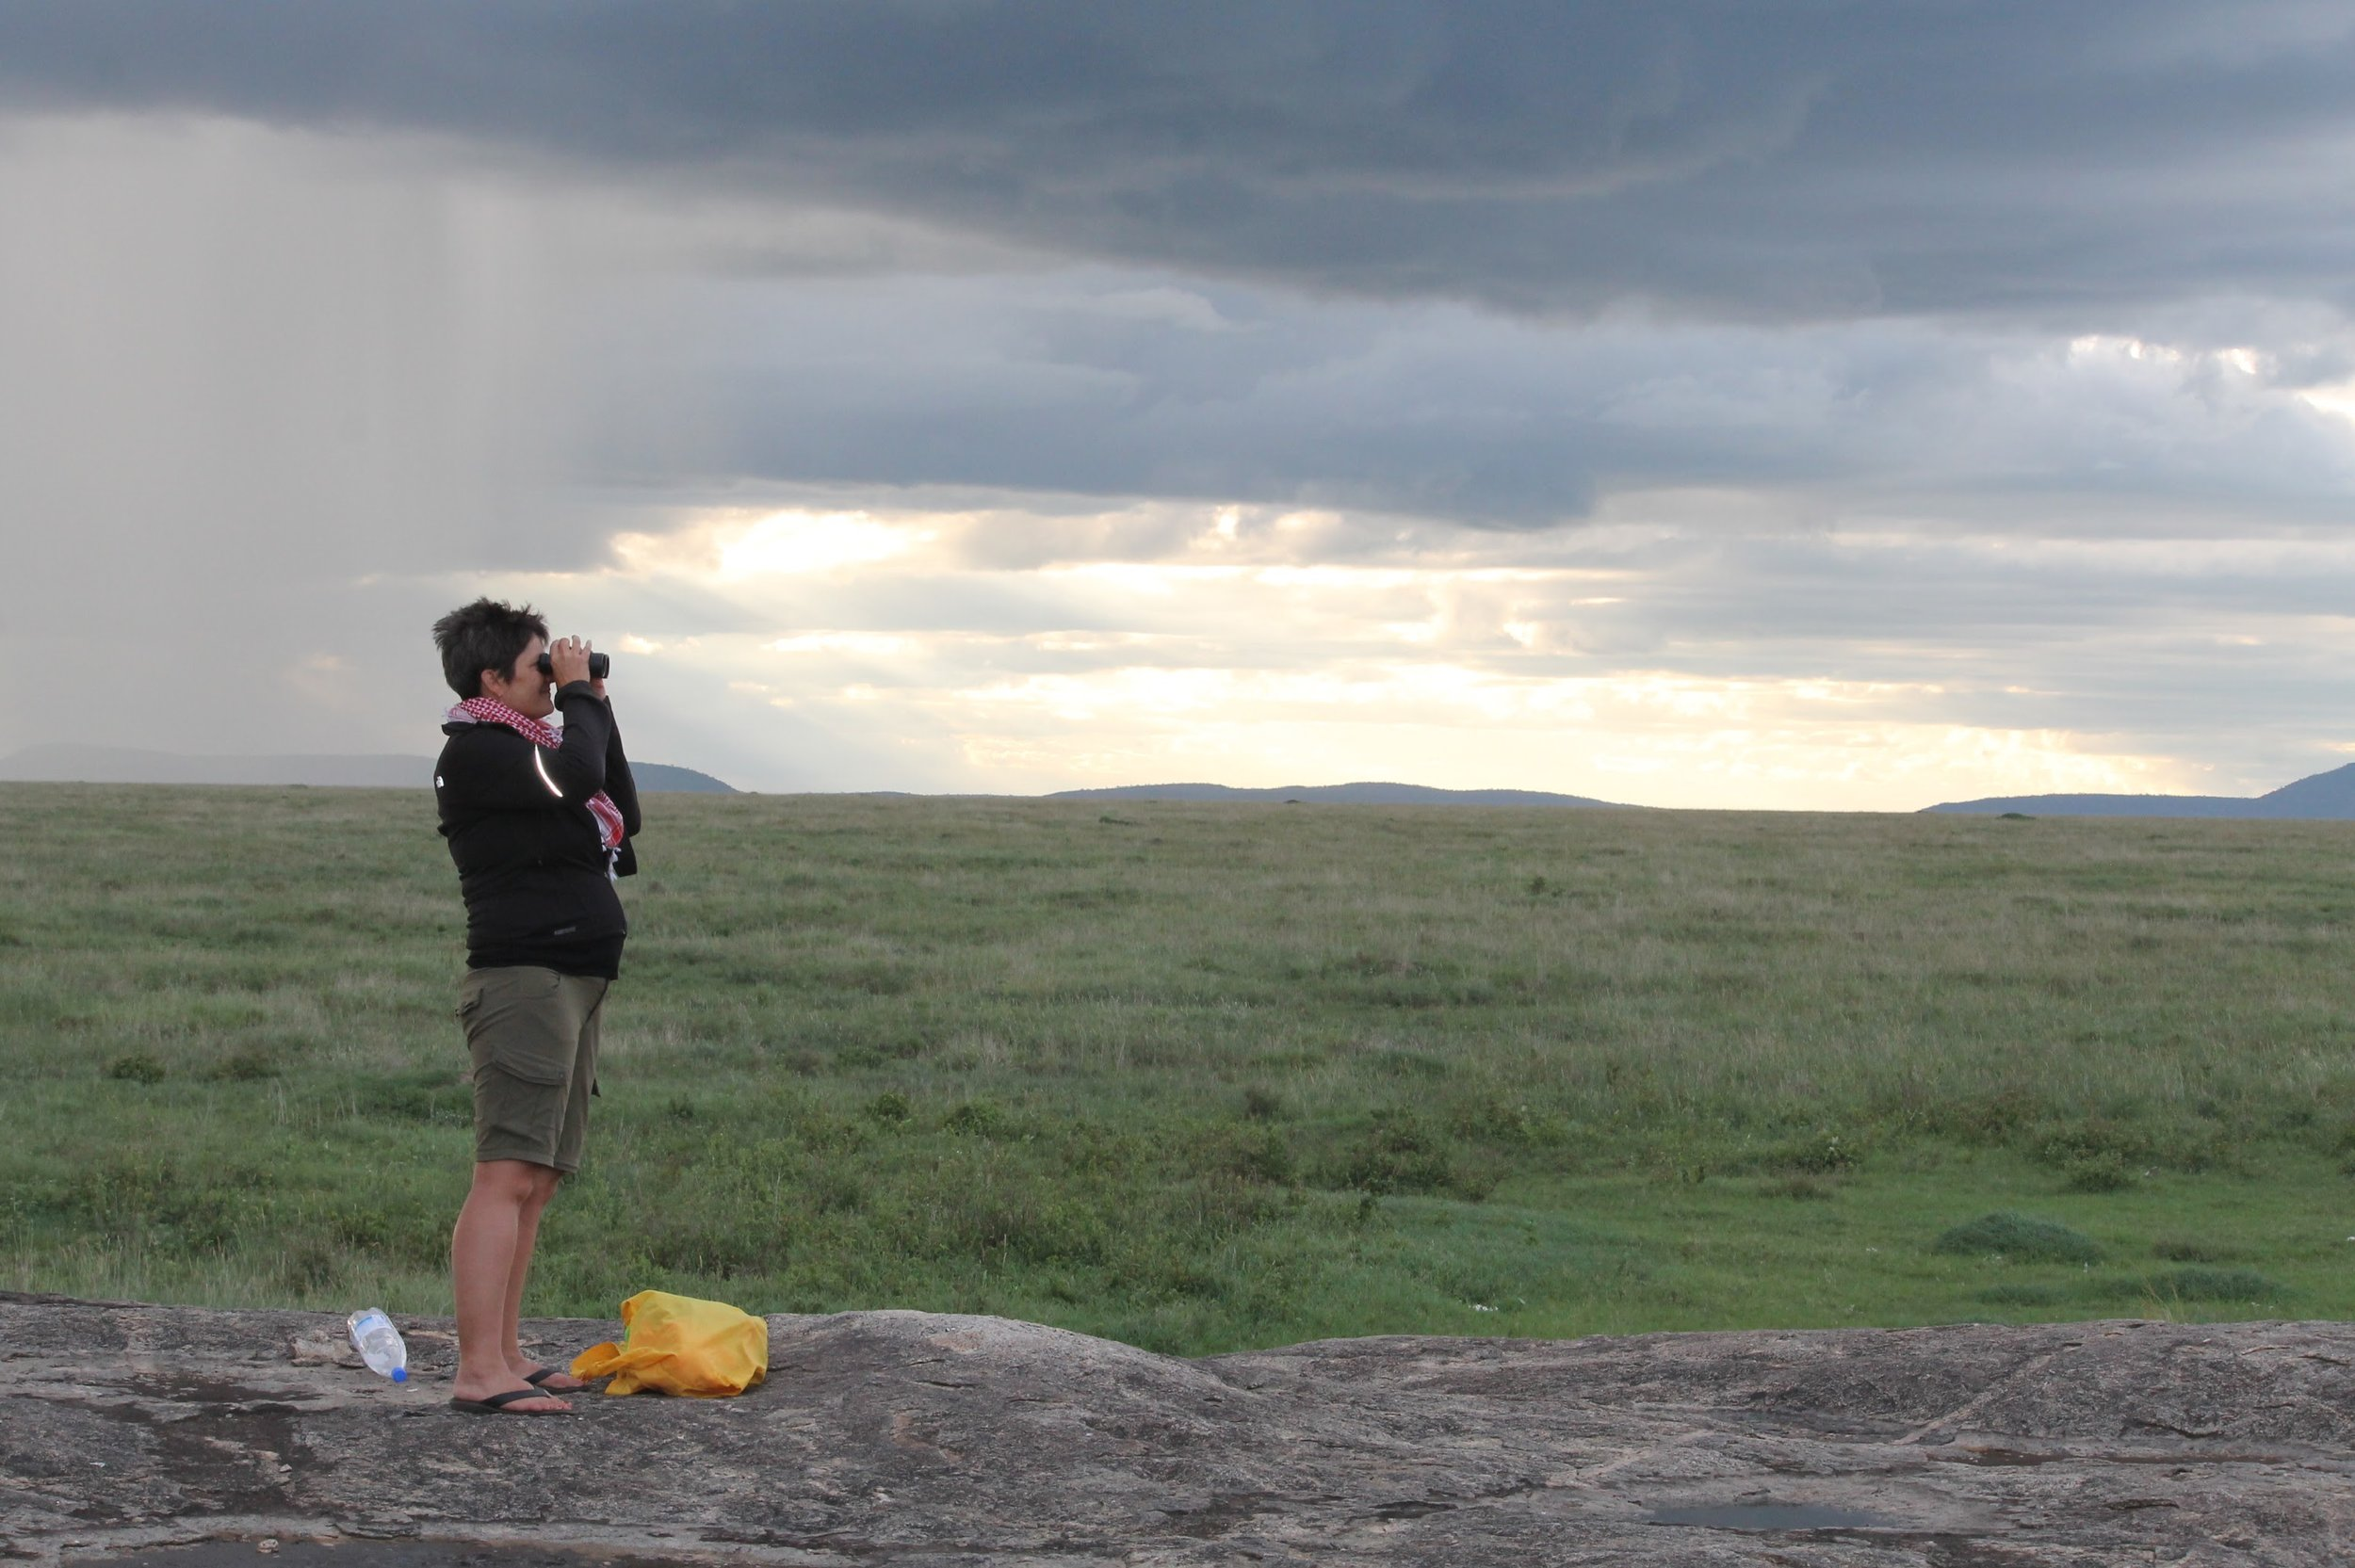 On the Serengeti, pondering just how vast it and the world are.